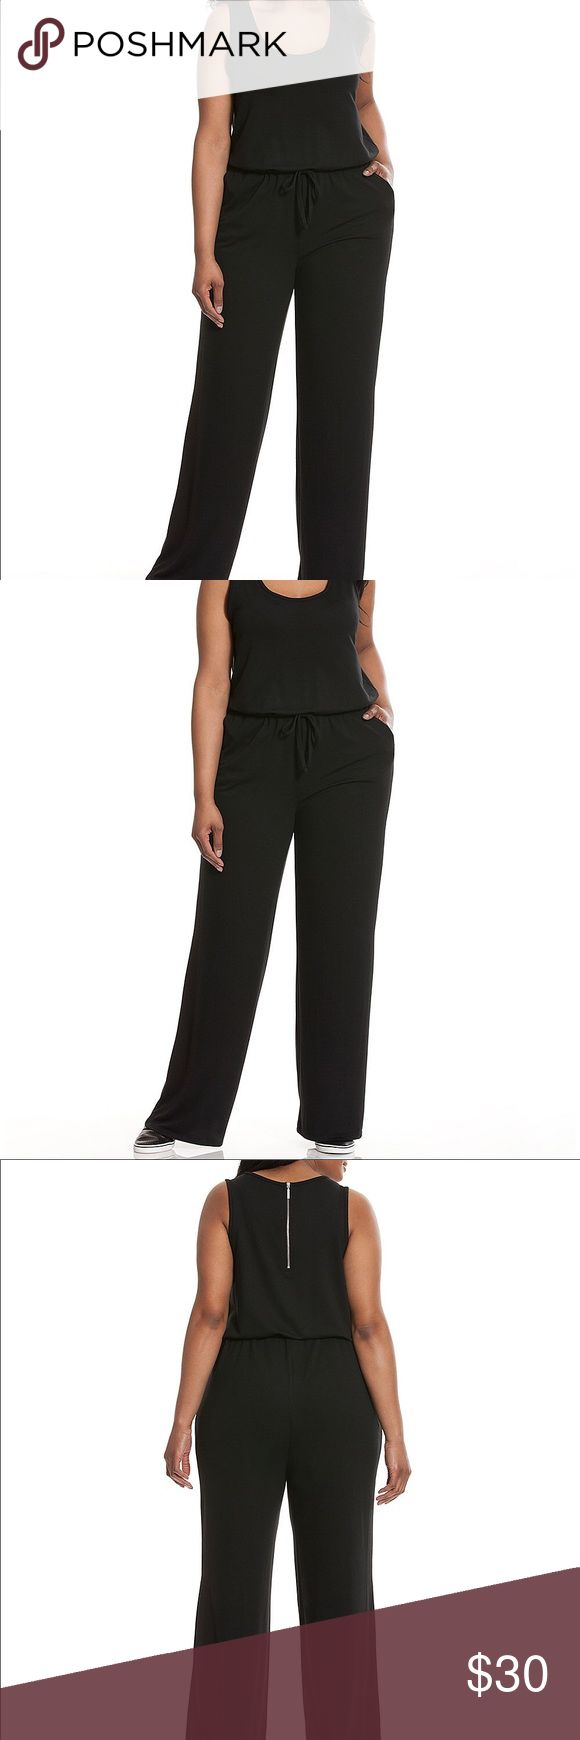 Scoop neck knit jumpsuit Livi Active's soft knit jumpsuit works a little wow into your wardrobe, keeping your look sporty-chic before and after your workout. Simple, single-piece styling makes this one a champ, with a flattering scoop neck, wide straps and a drawstring waist to define the fit to flatter curves. Slash pockets complete the look. Lane Bryant Pants Jumpsuits & Rompers